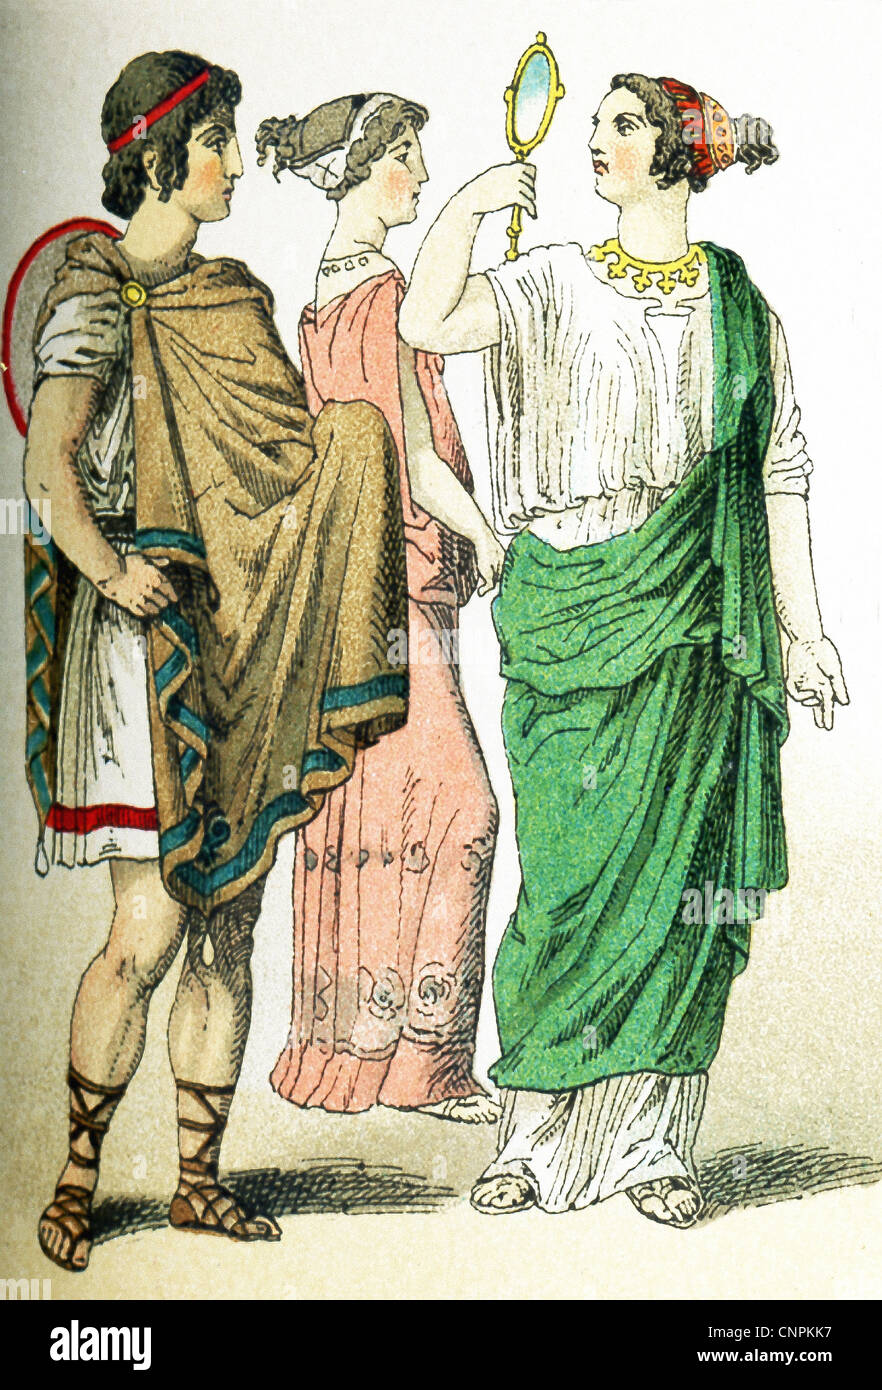 The ancient Greeks represented here are, from left to right: a Greek in traveling clothes, two women. Stock Photo